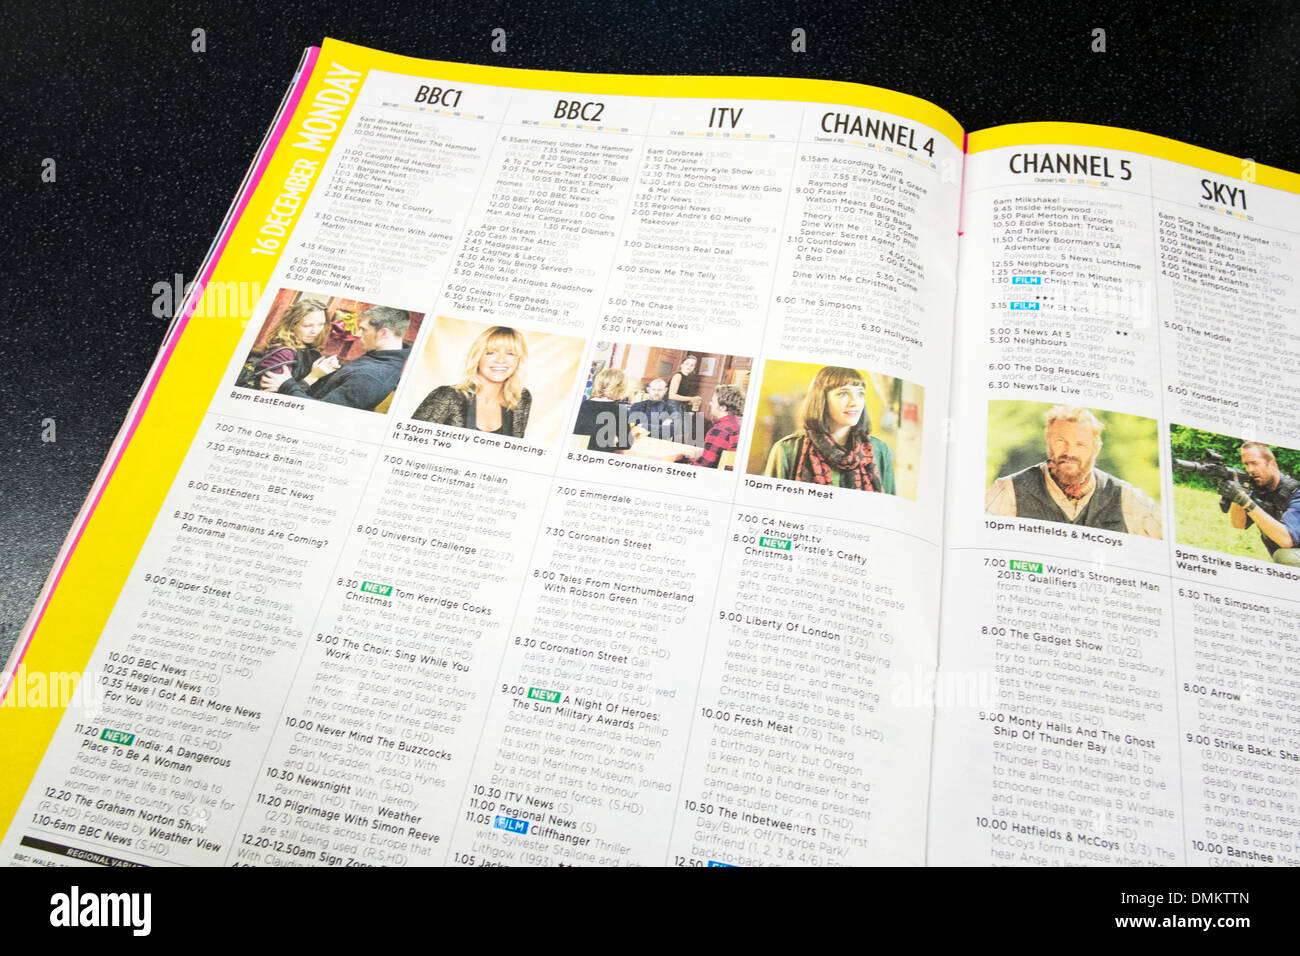 UK TV listings television programs listed by channel channels in paper book form - Stock Image